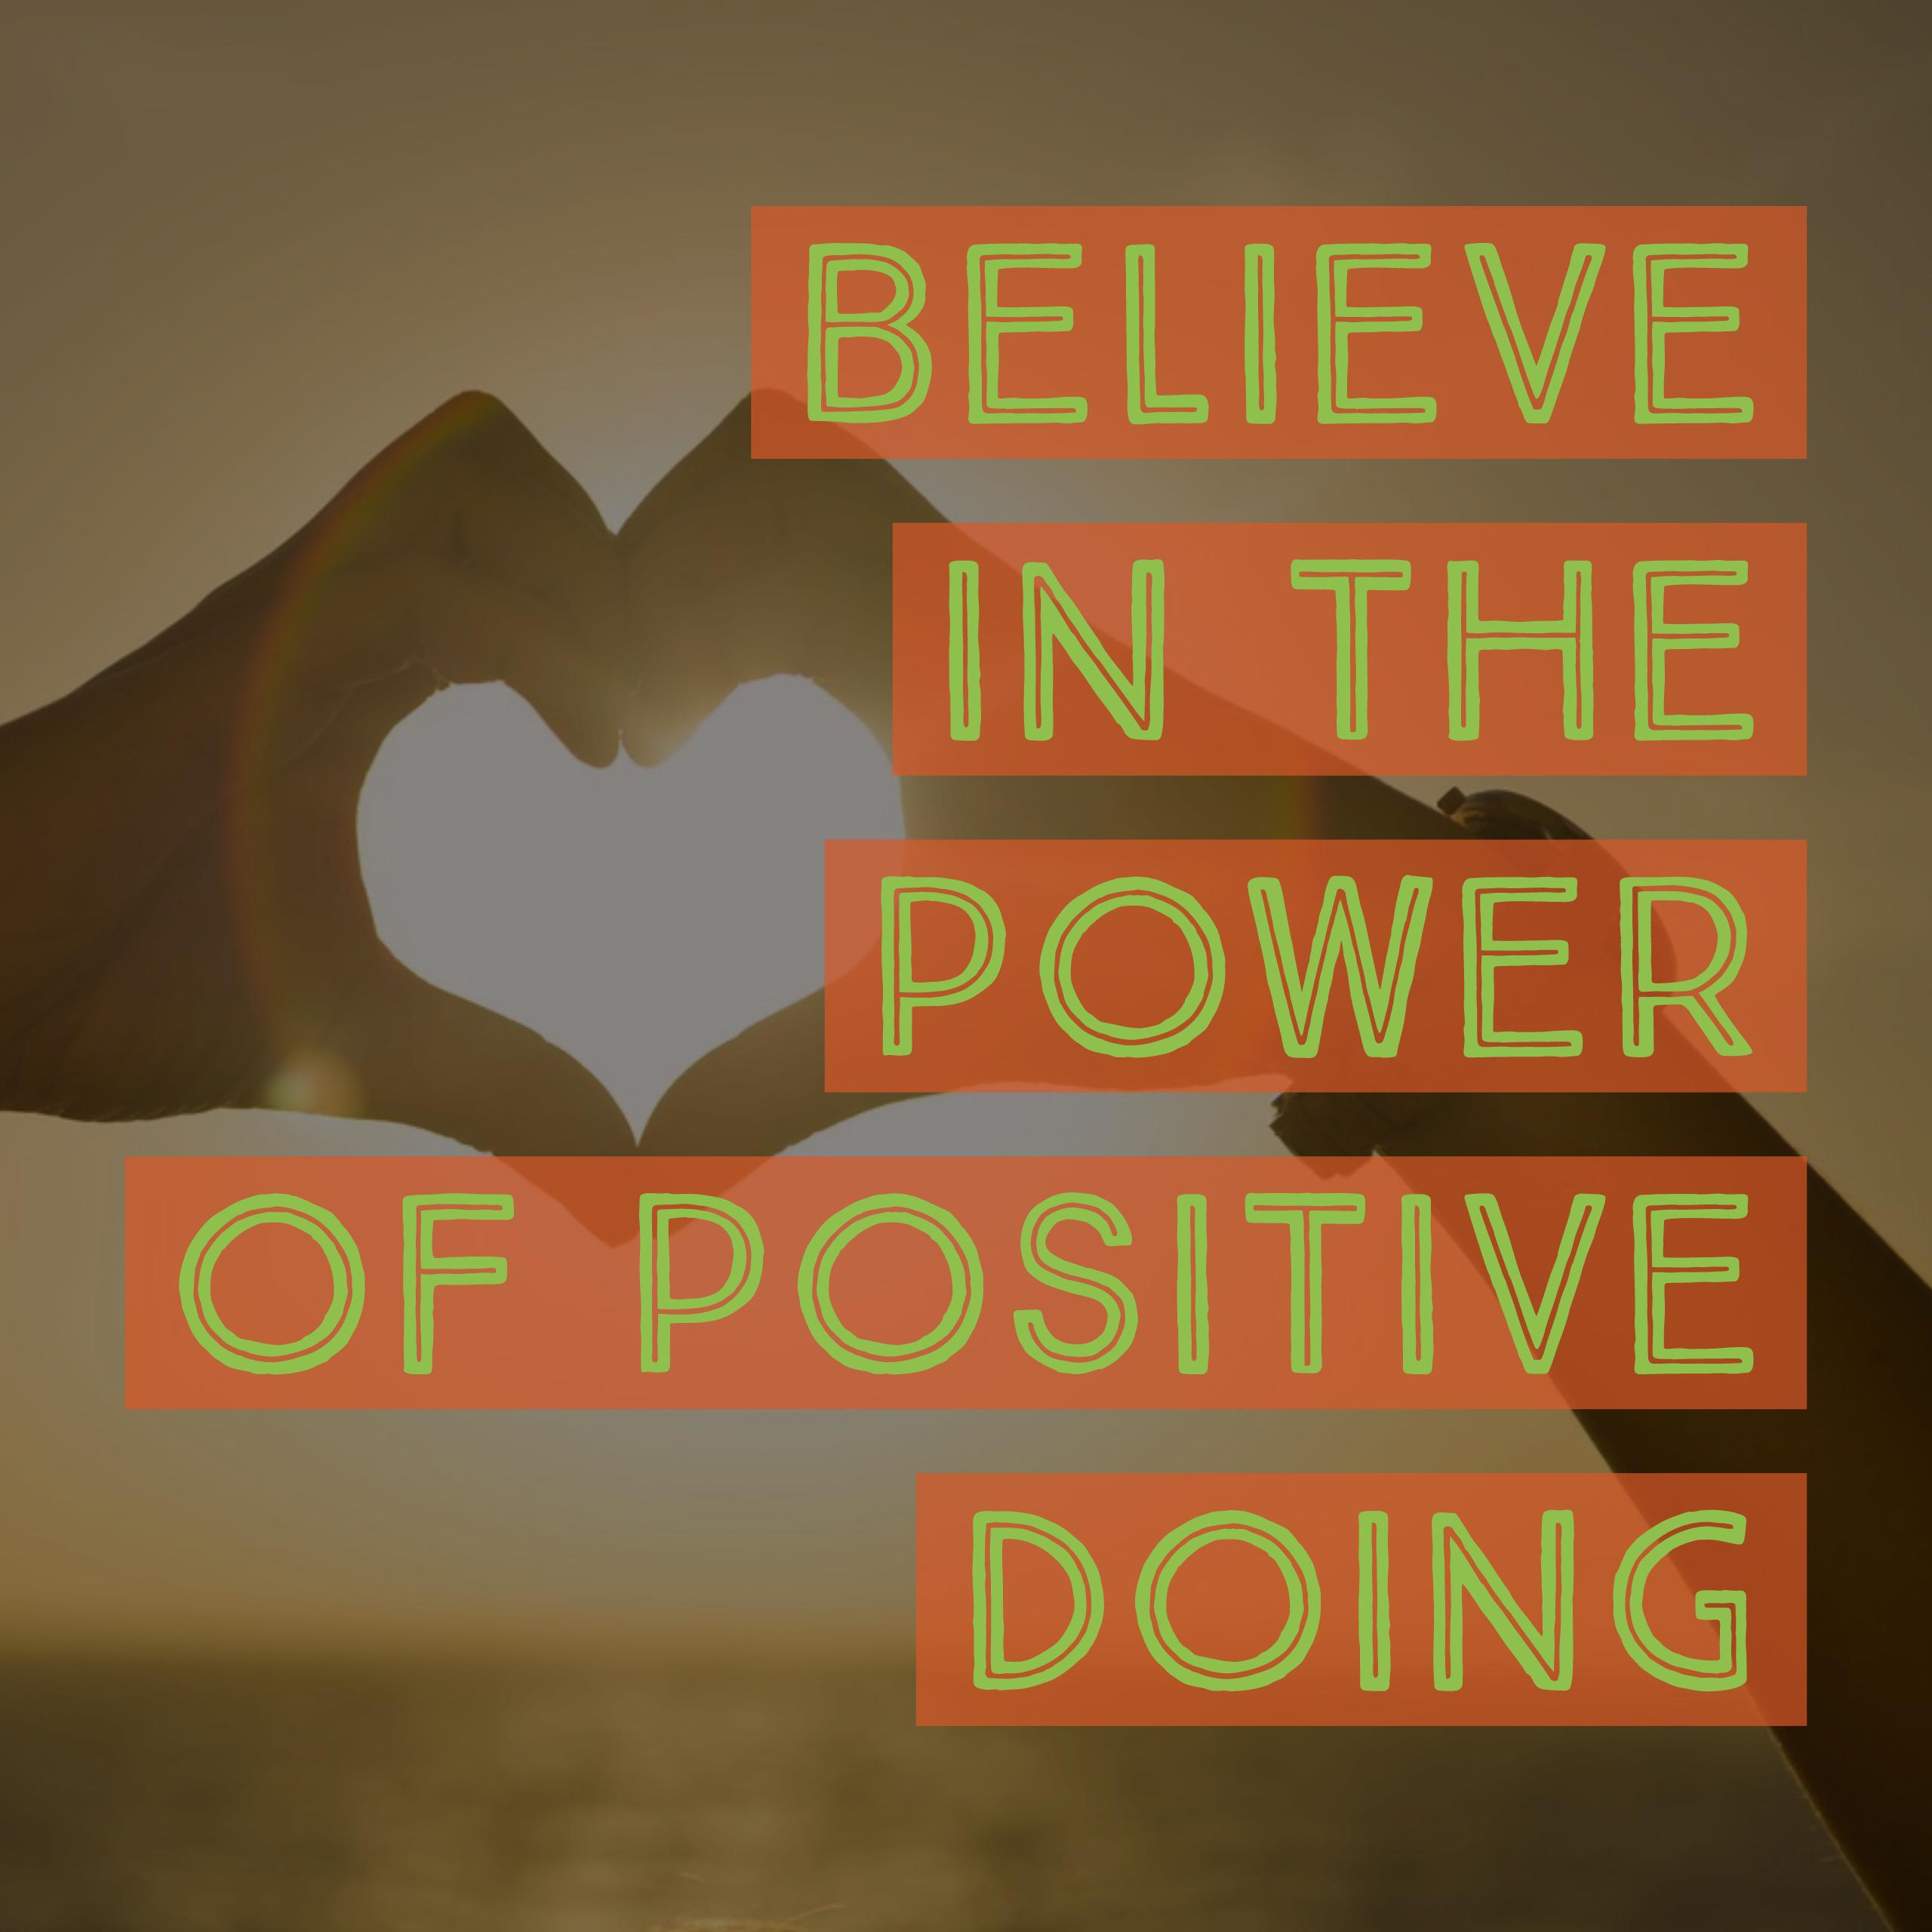 believe in the power of positive doing